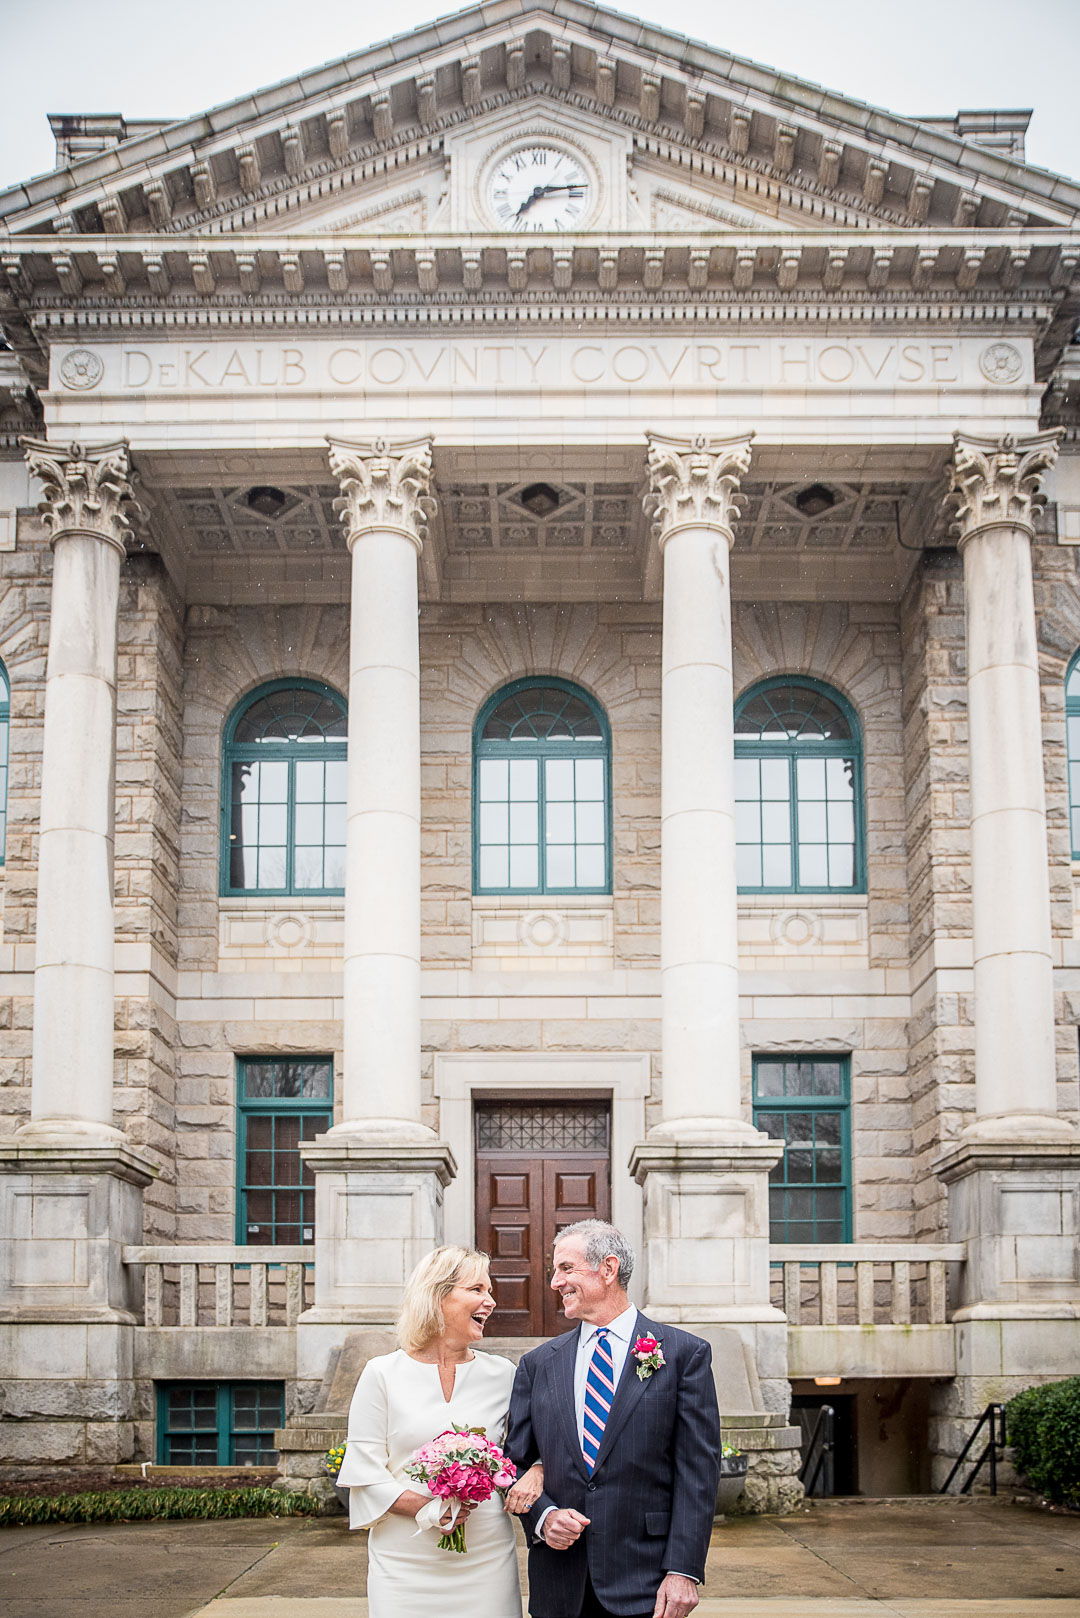 Paula-Michael-Dekalb-County-Courthouse-0111